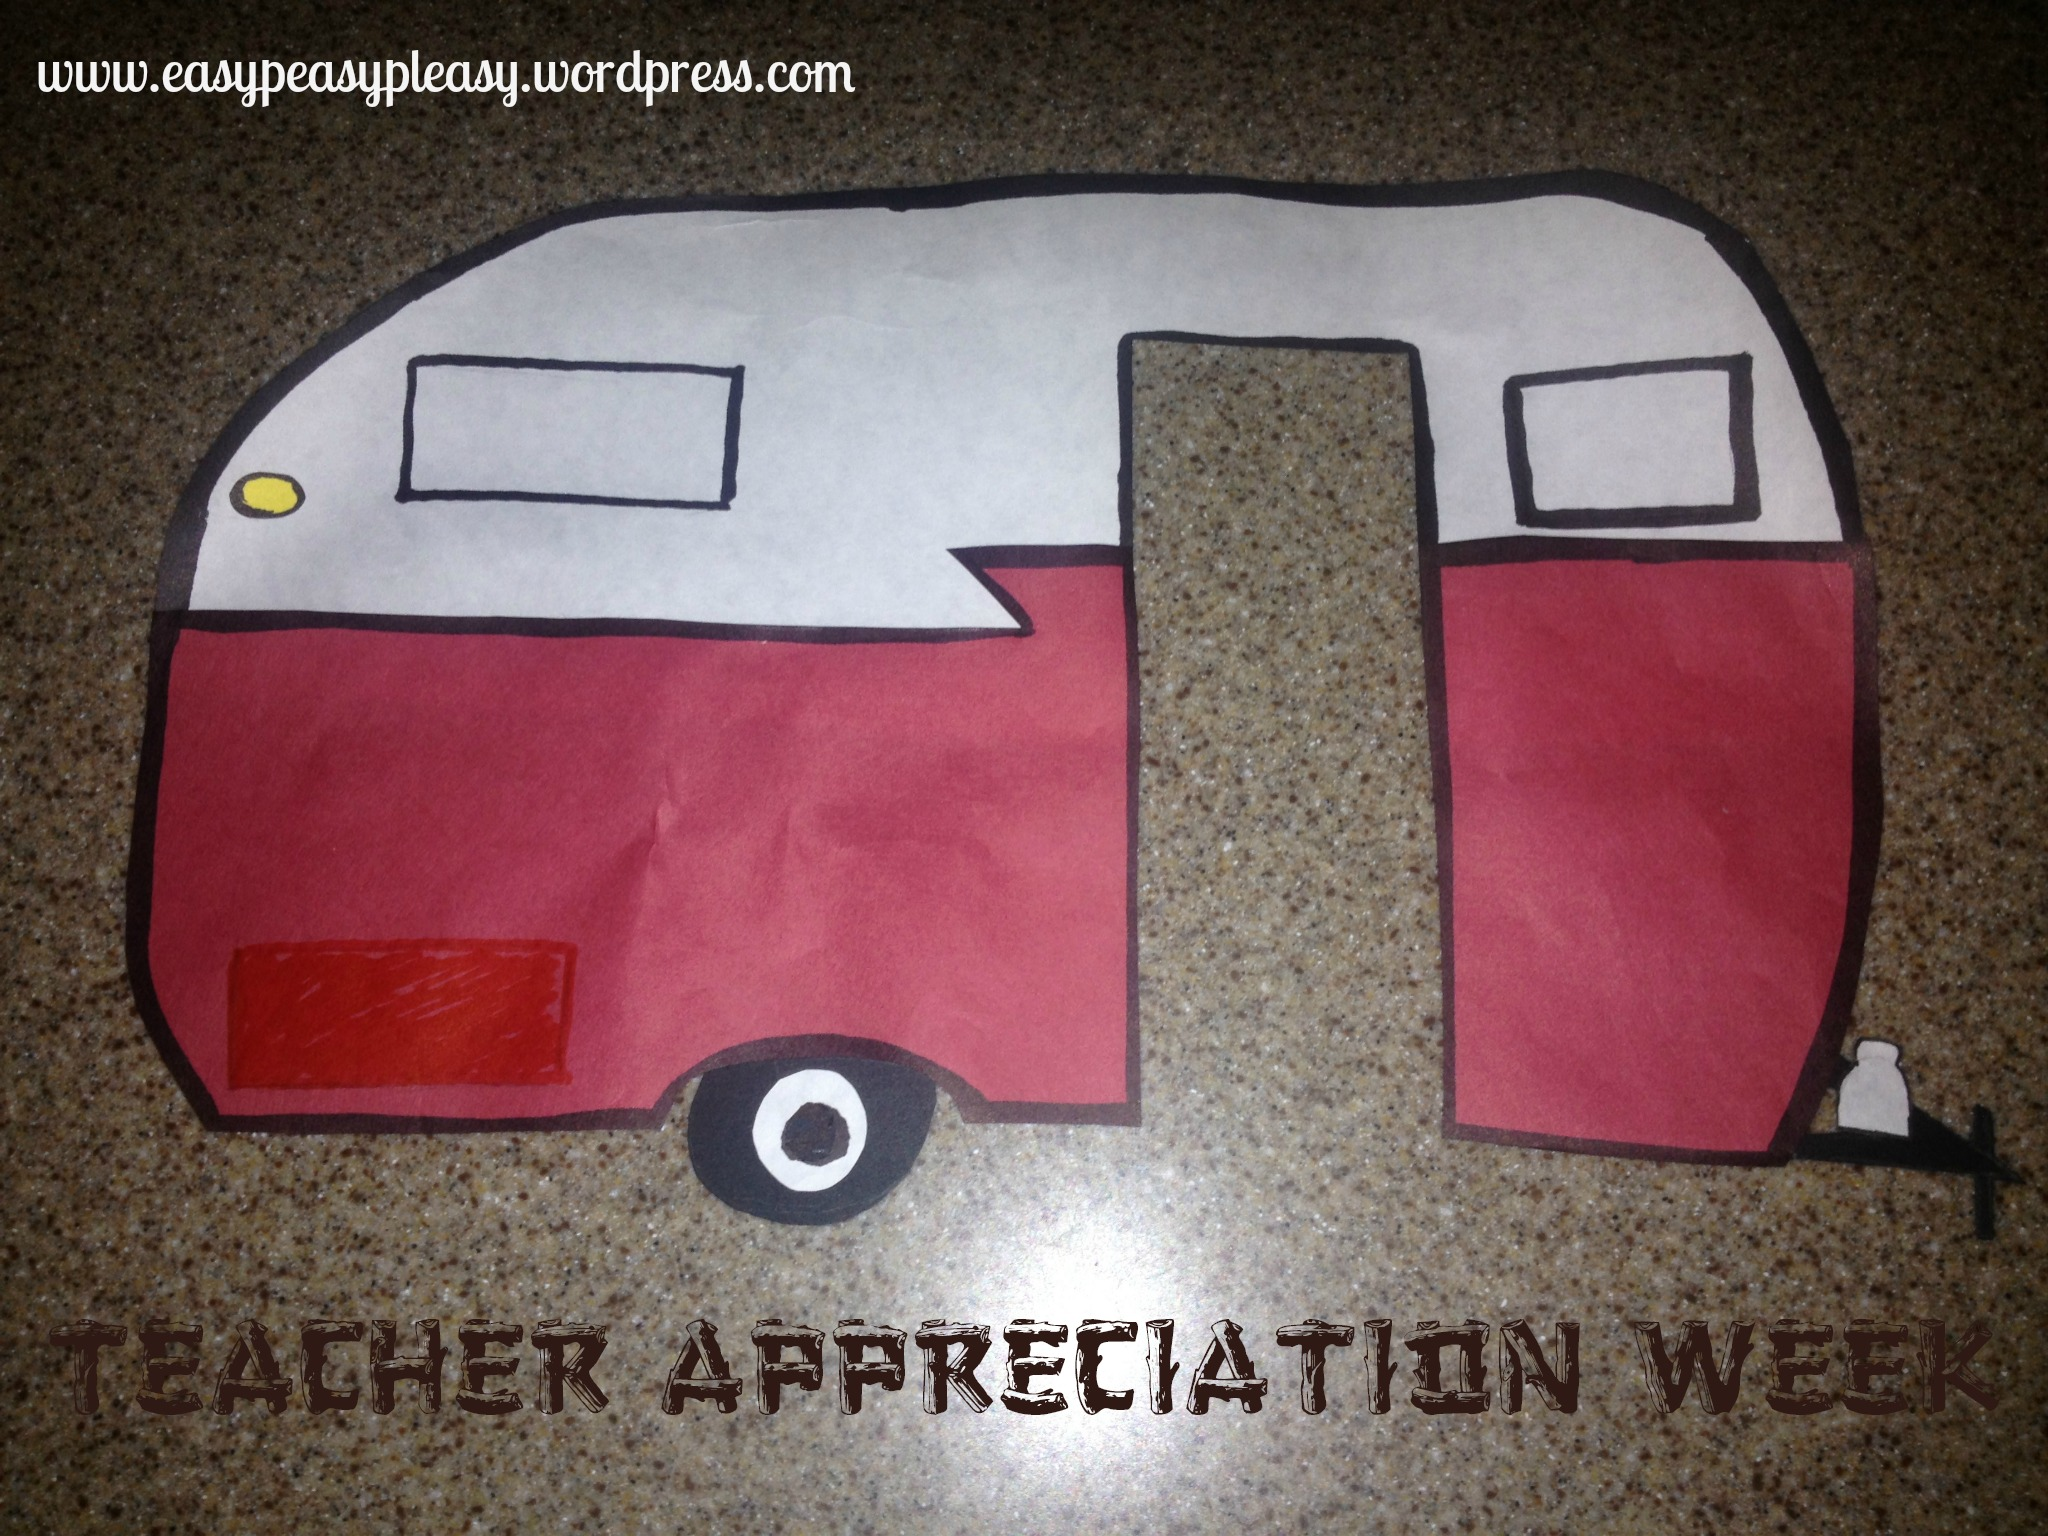 Teacher Appreciation Week Camping Theme Camper trial run